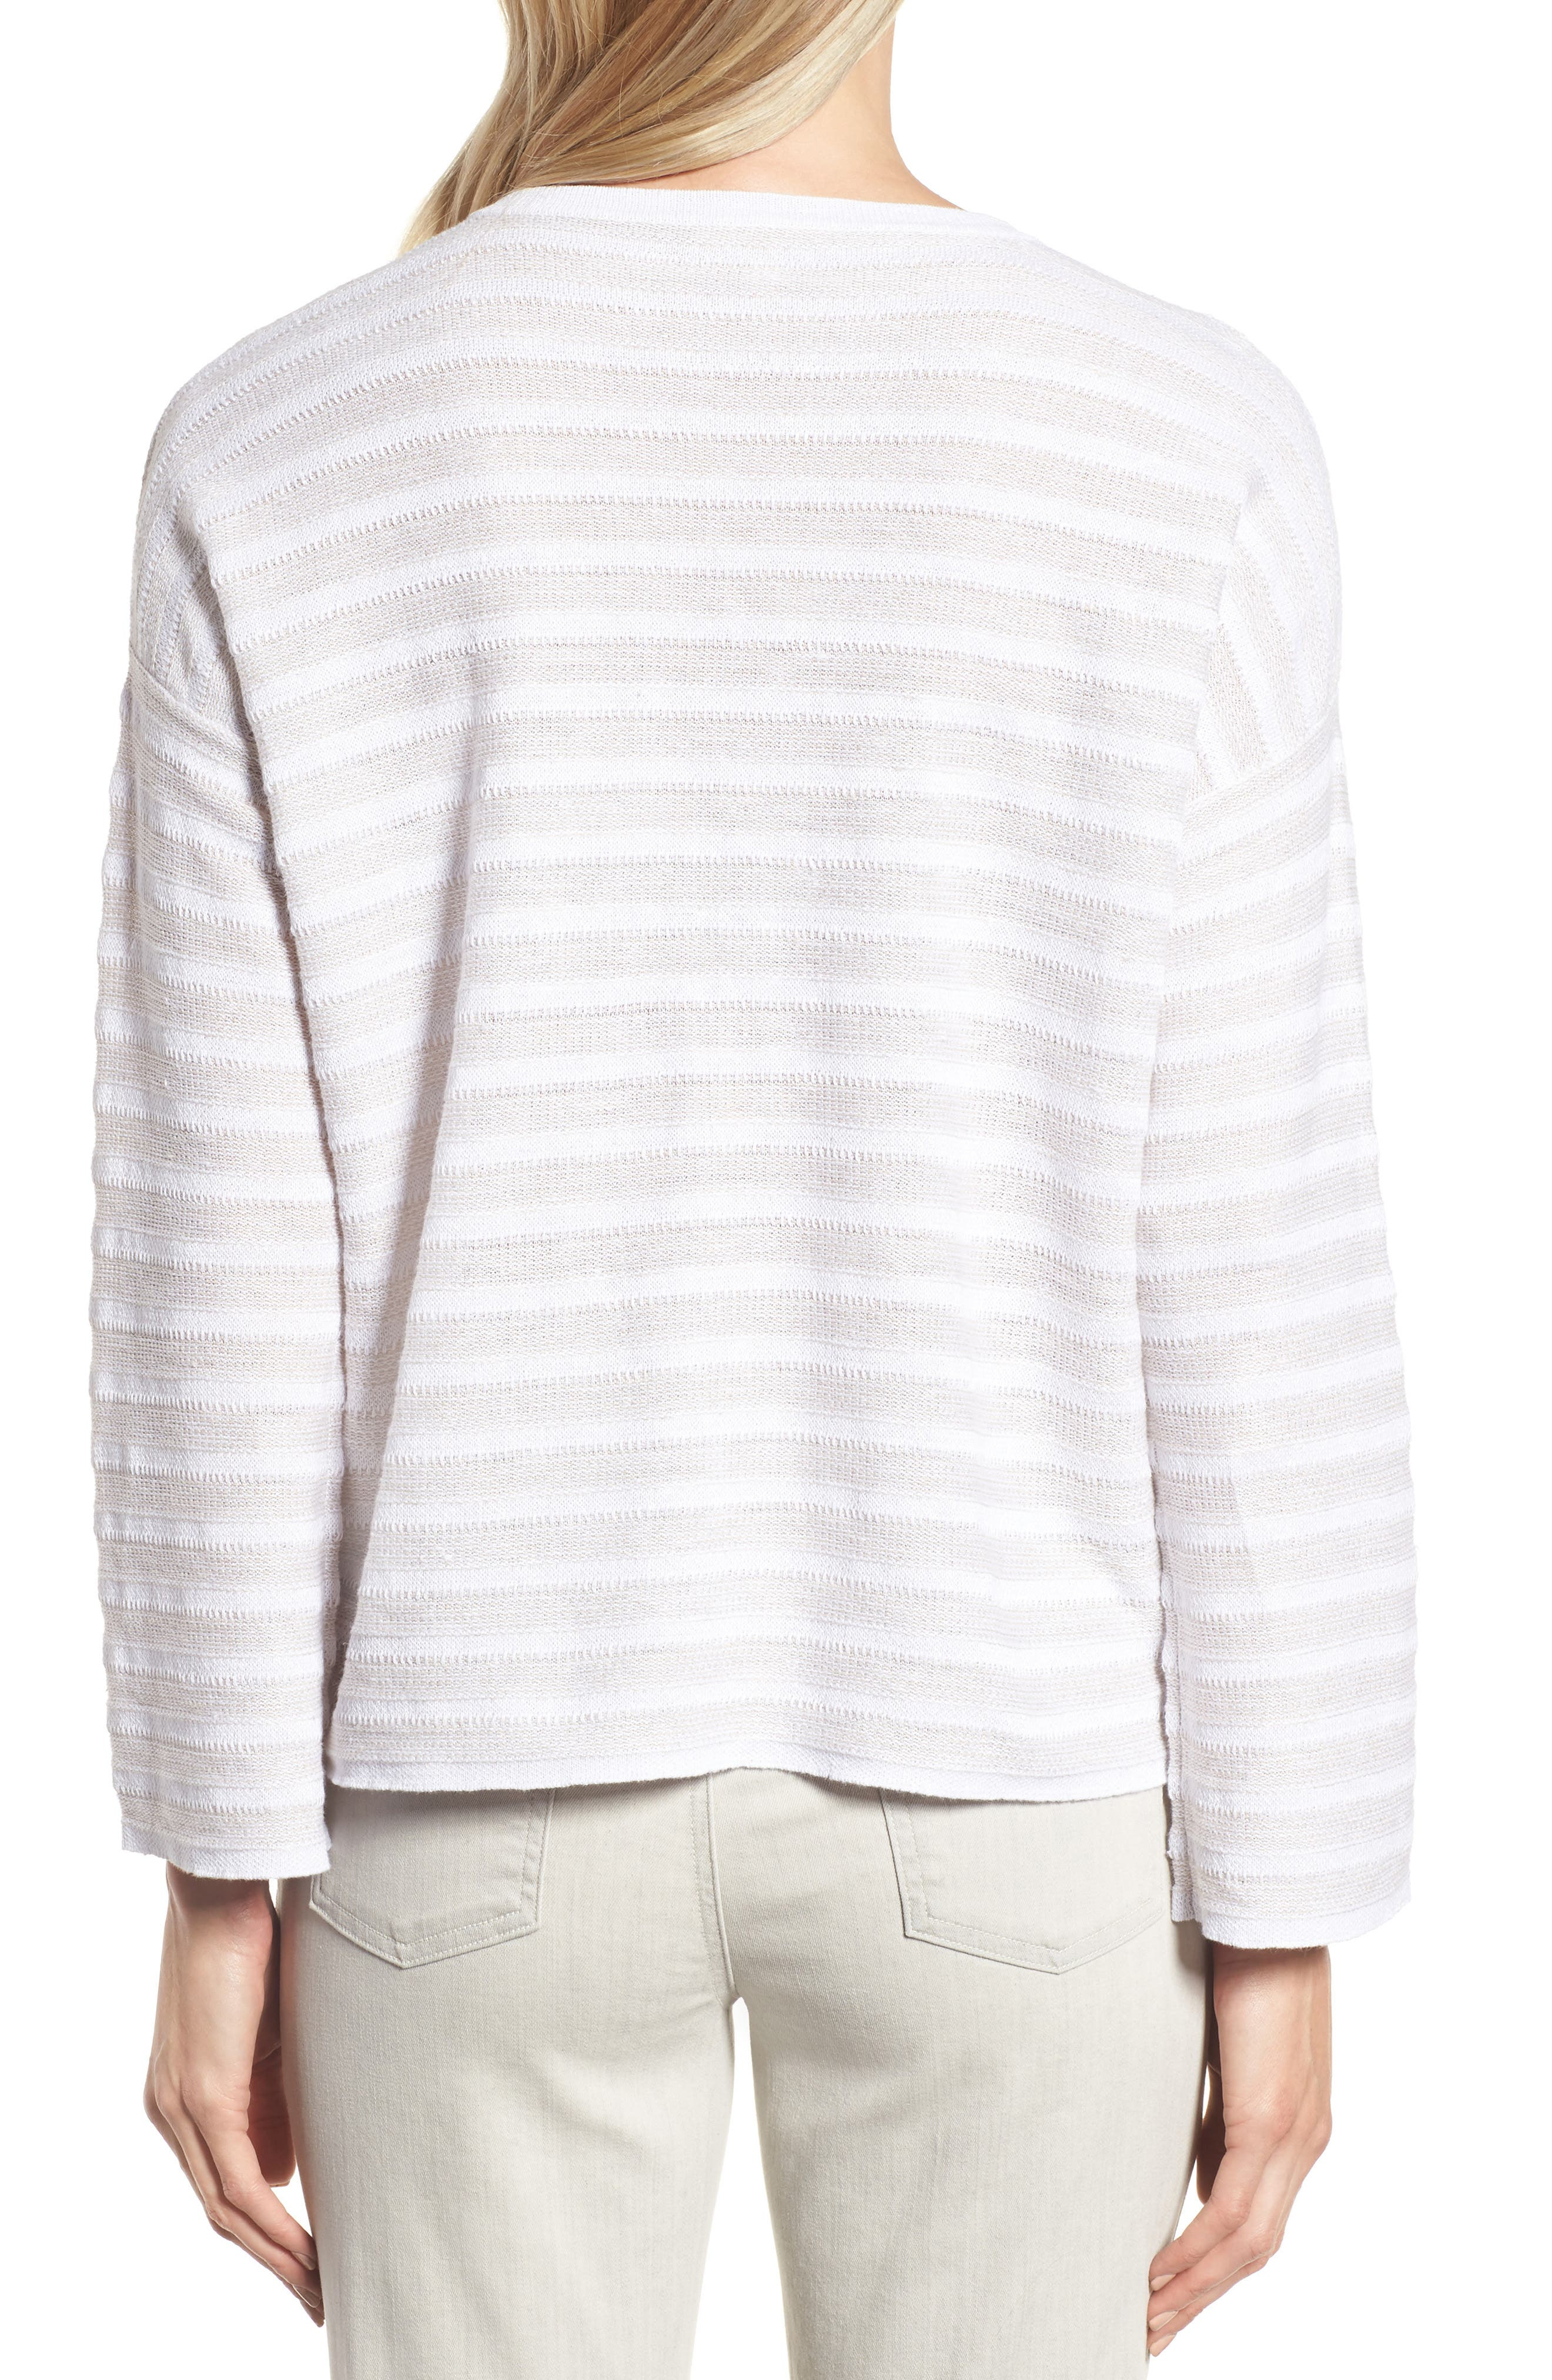 Textured Organic Linen Sweater,                             Alternate thumbnail 2, color,                             White Natural